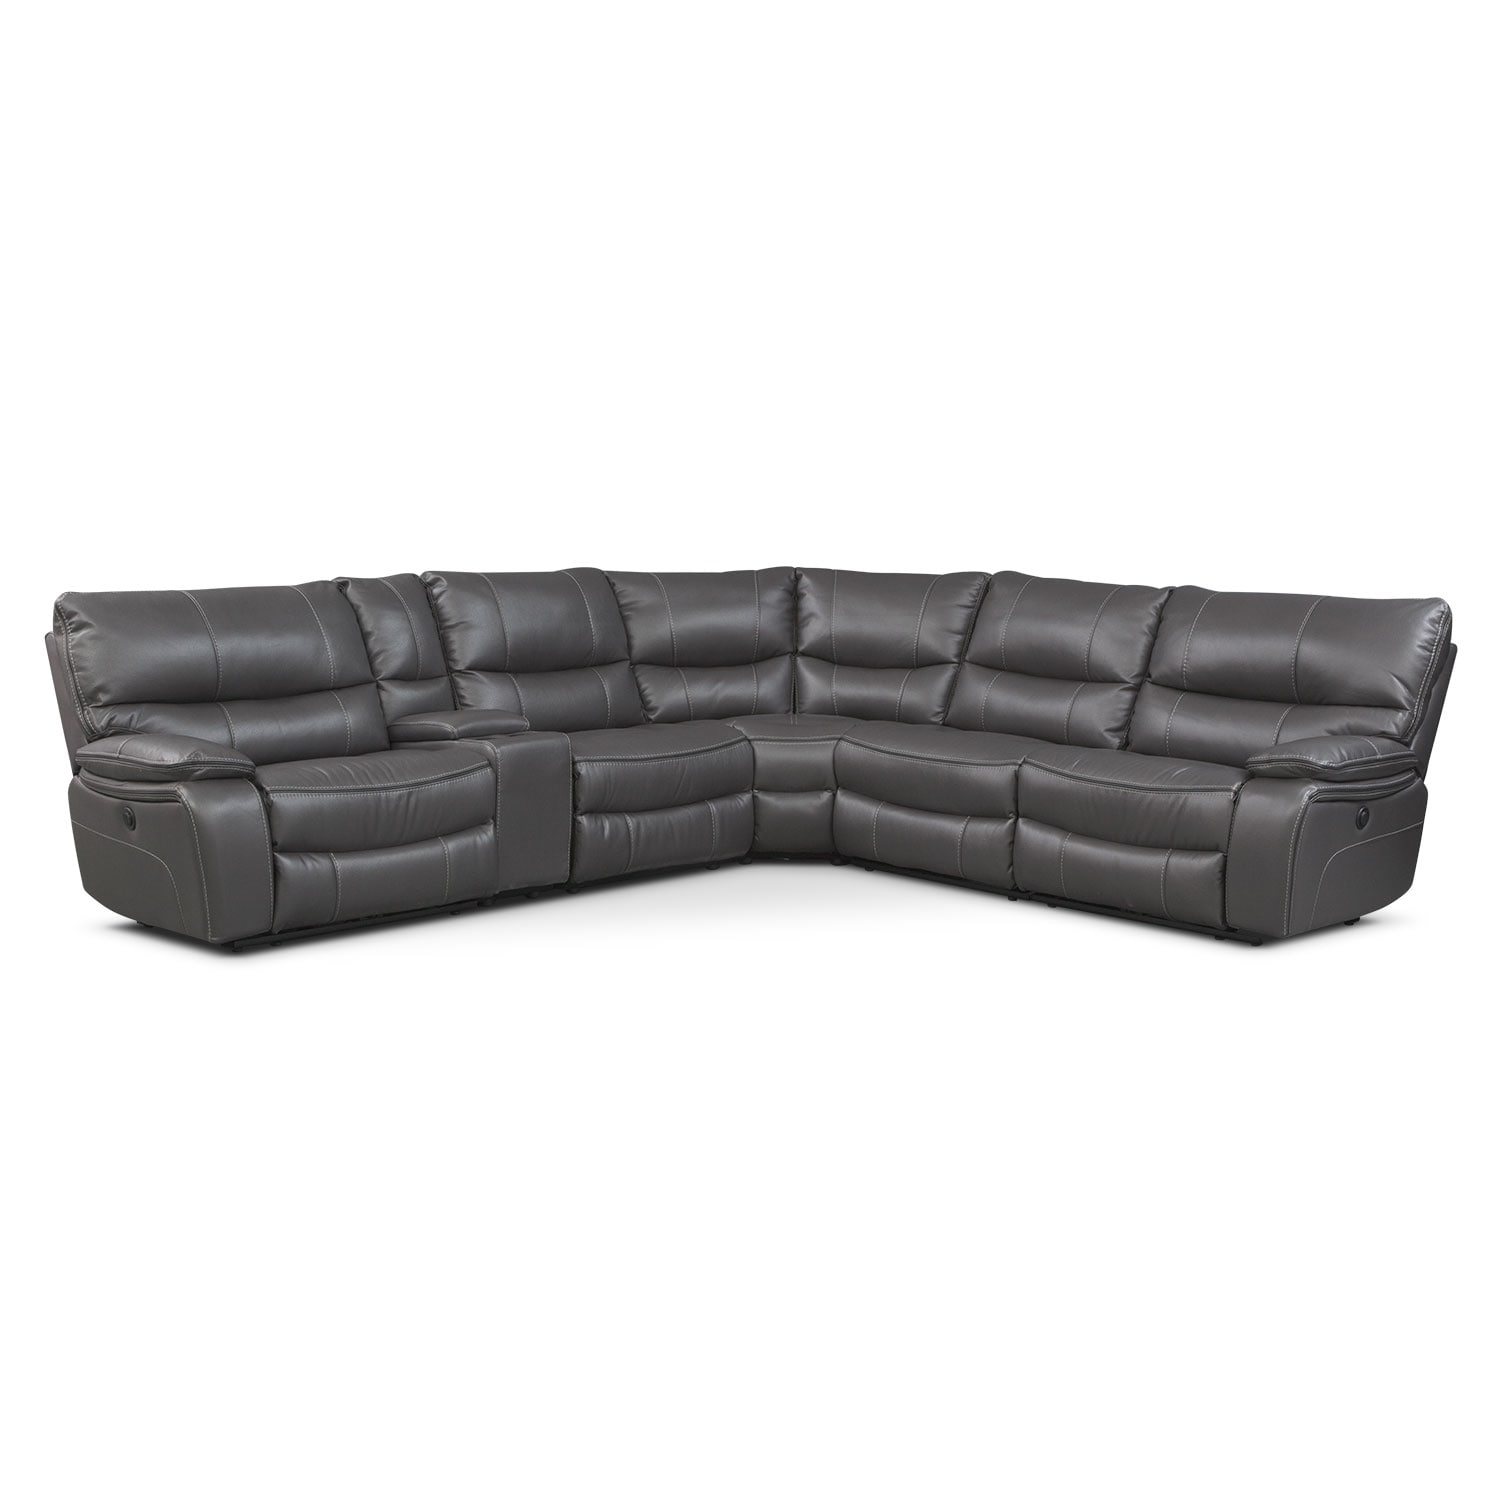 Orlando 6-Piece Power Reclining Sectional with 2 Stationary Chairs - Gray